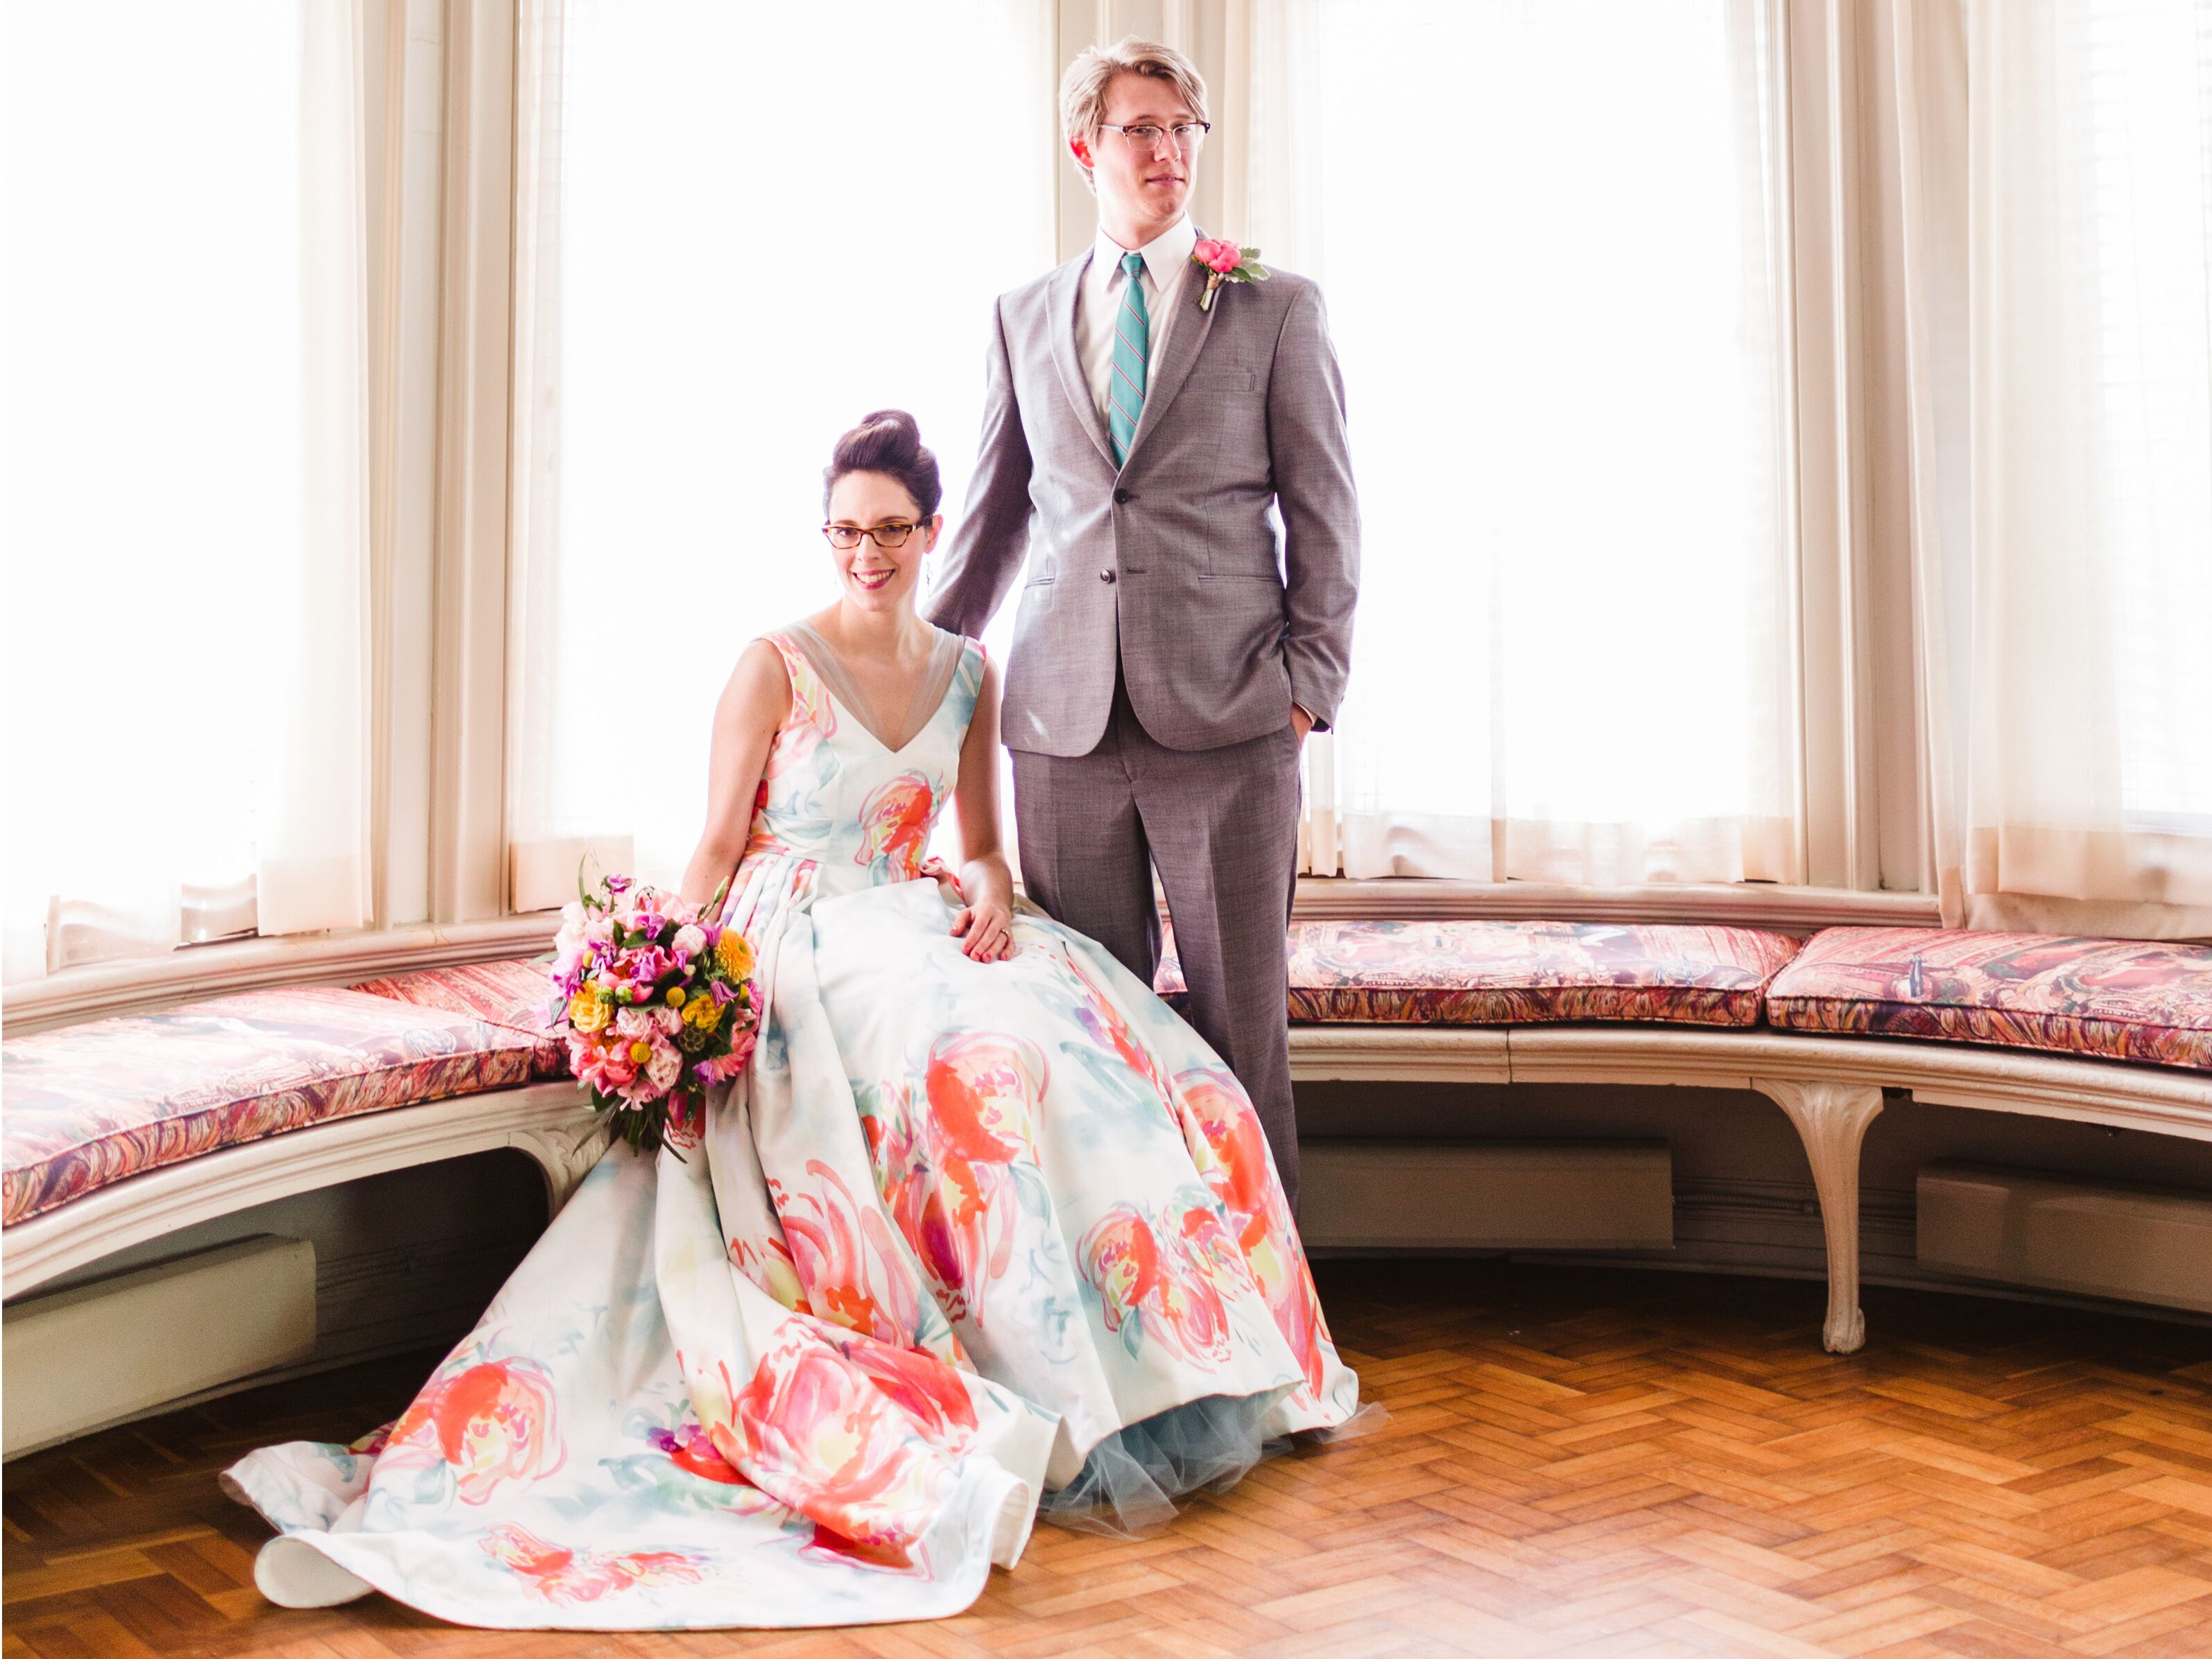 Get A Custom Wedding Dress Without Going Over Your Budget